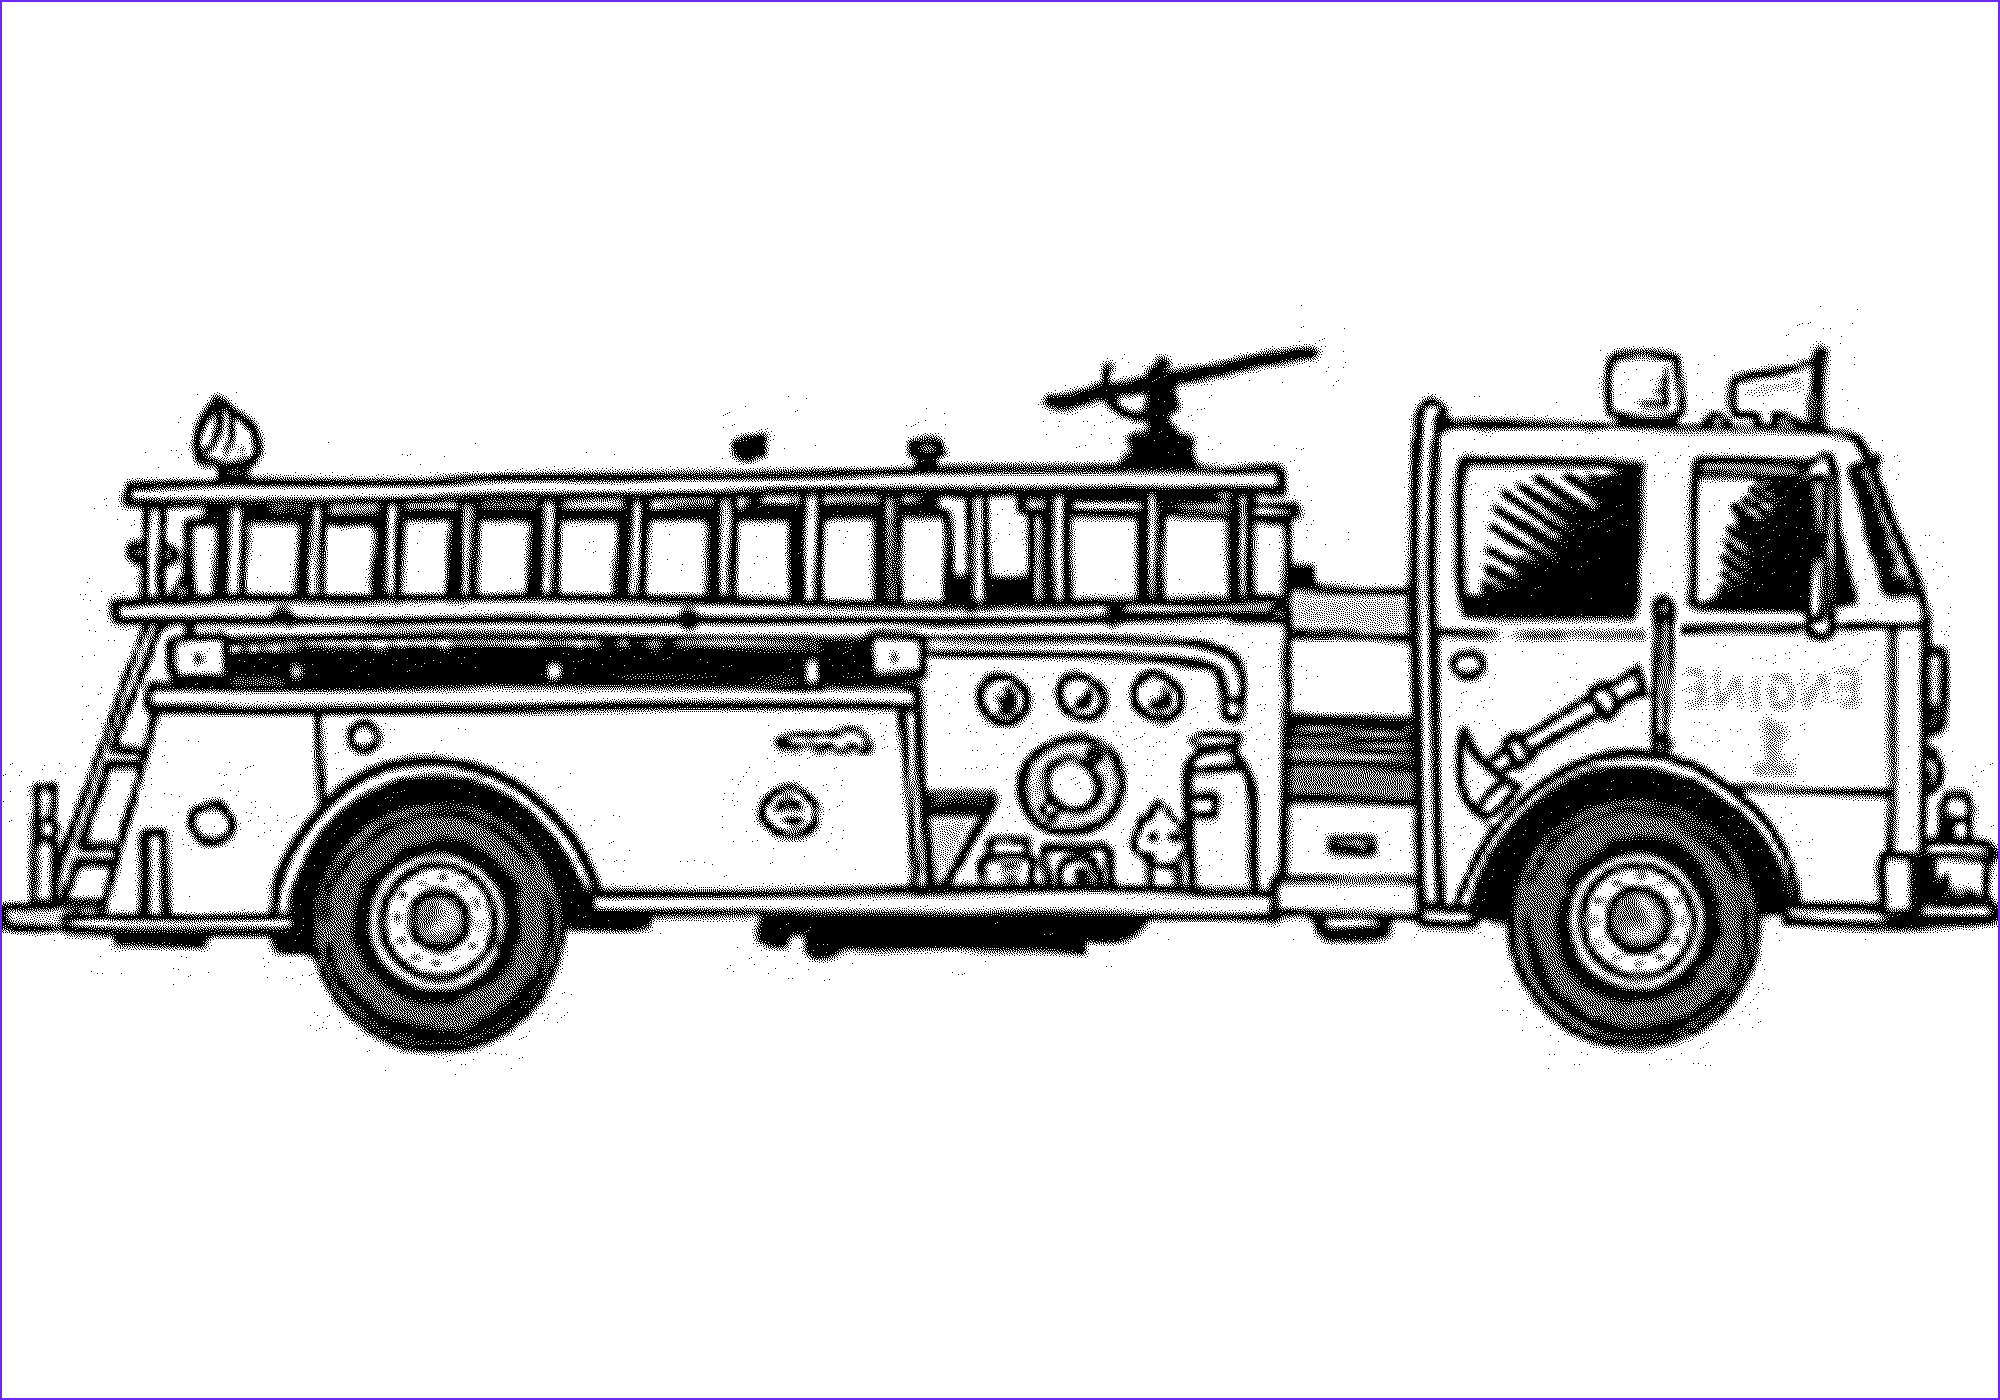 Fire Truck Coloring Pages Cool Photos Print & Download Educational Fire Truck Coloring Pages